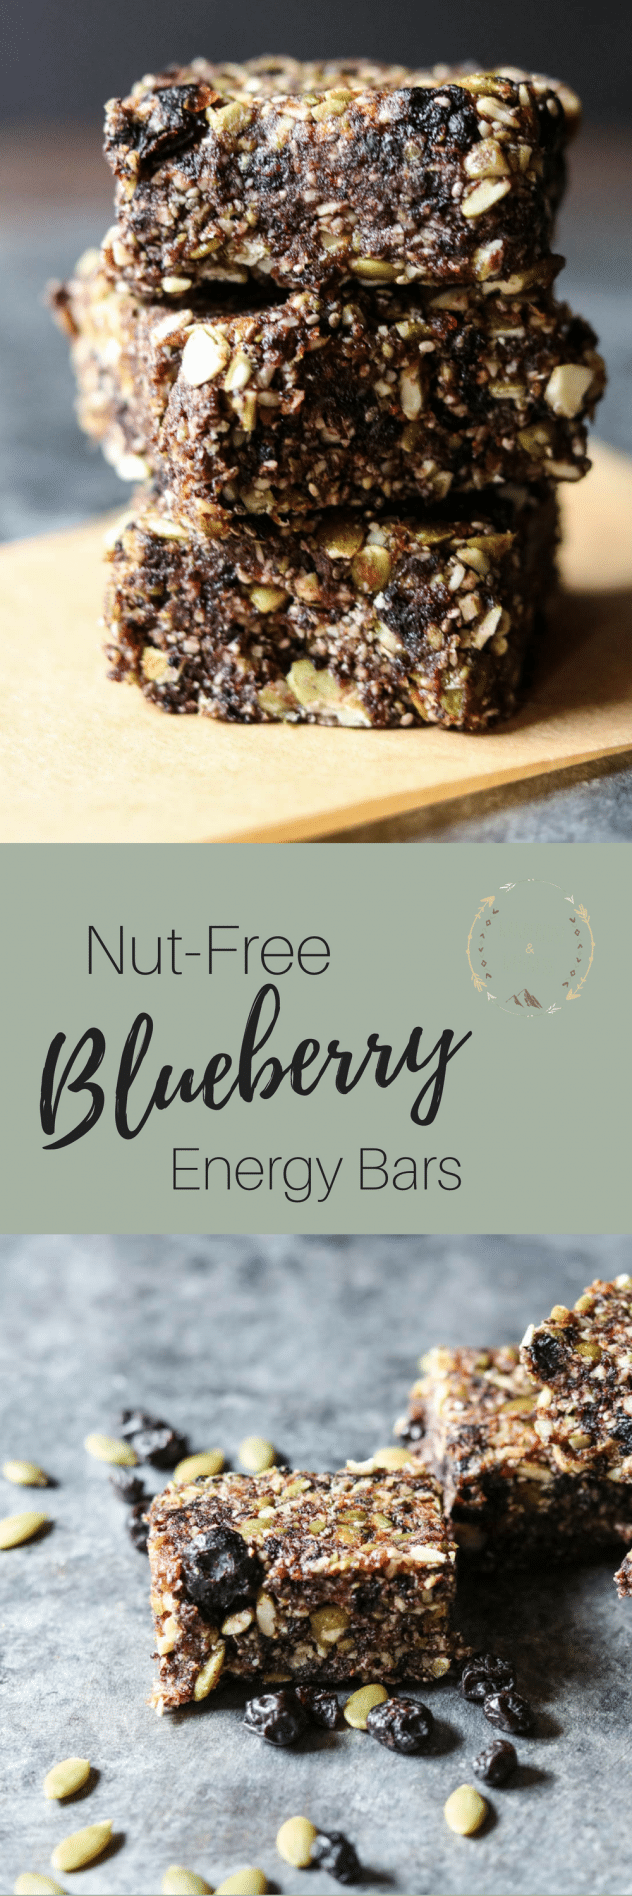 nut-free blueberry energy bars